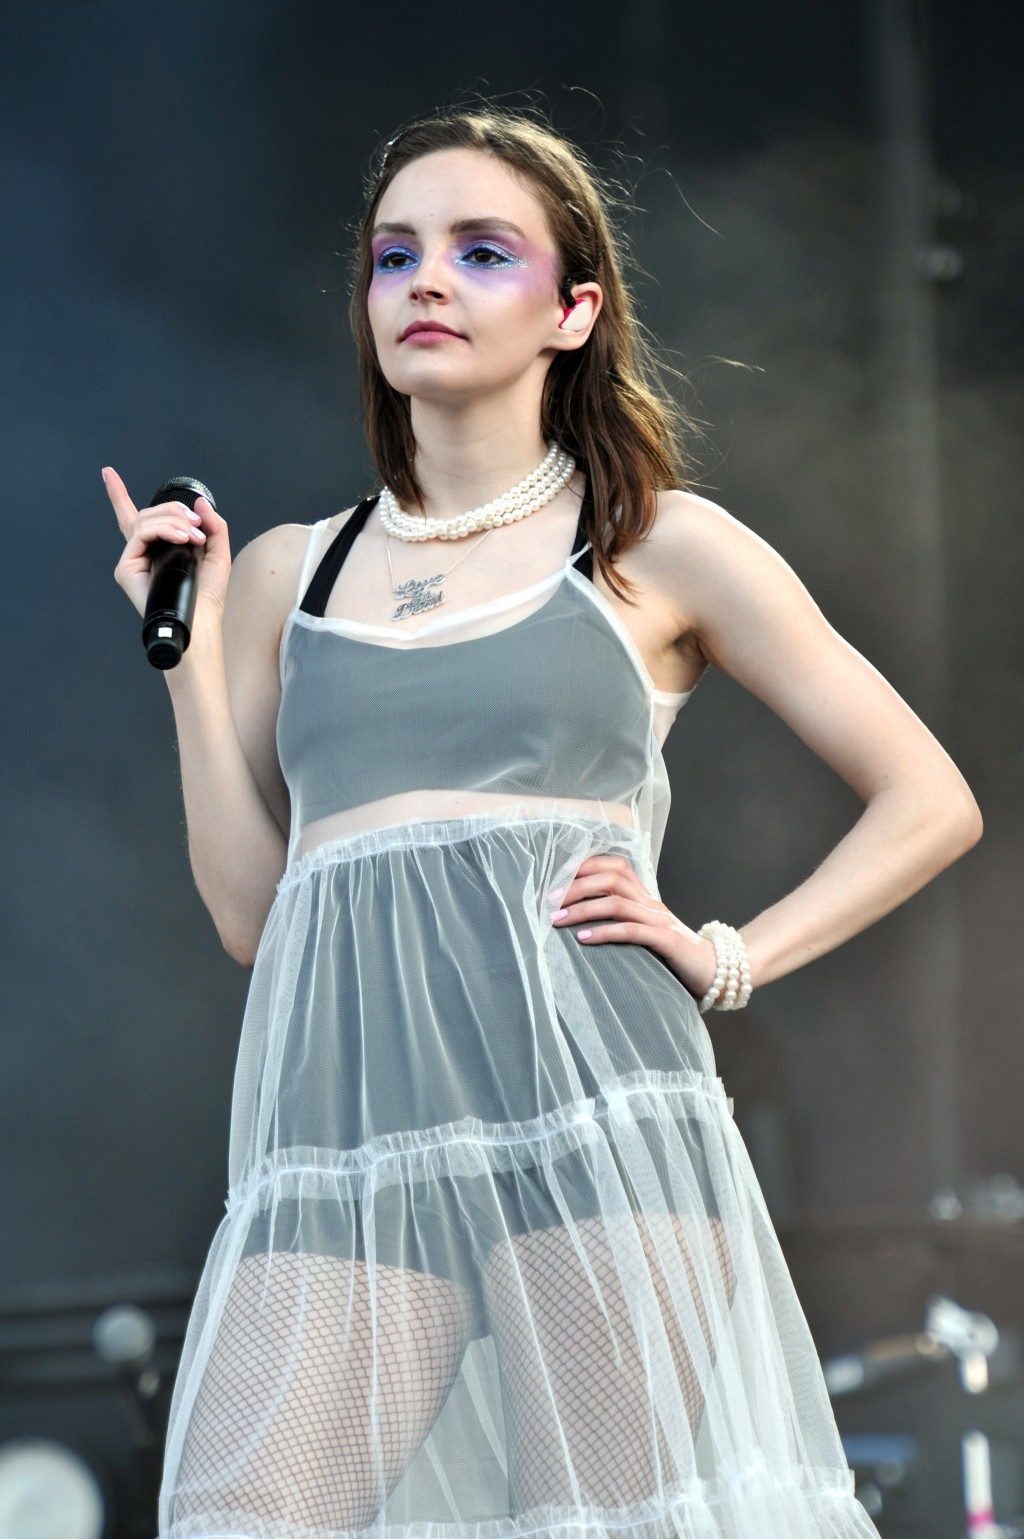 FILE - In this Aug. 2, 2018 file photo, Lauren Mayberry of the band Chvrches performs at Lollapalooza in Chicago. Fans and artists are asking the live